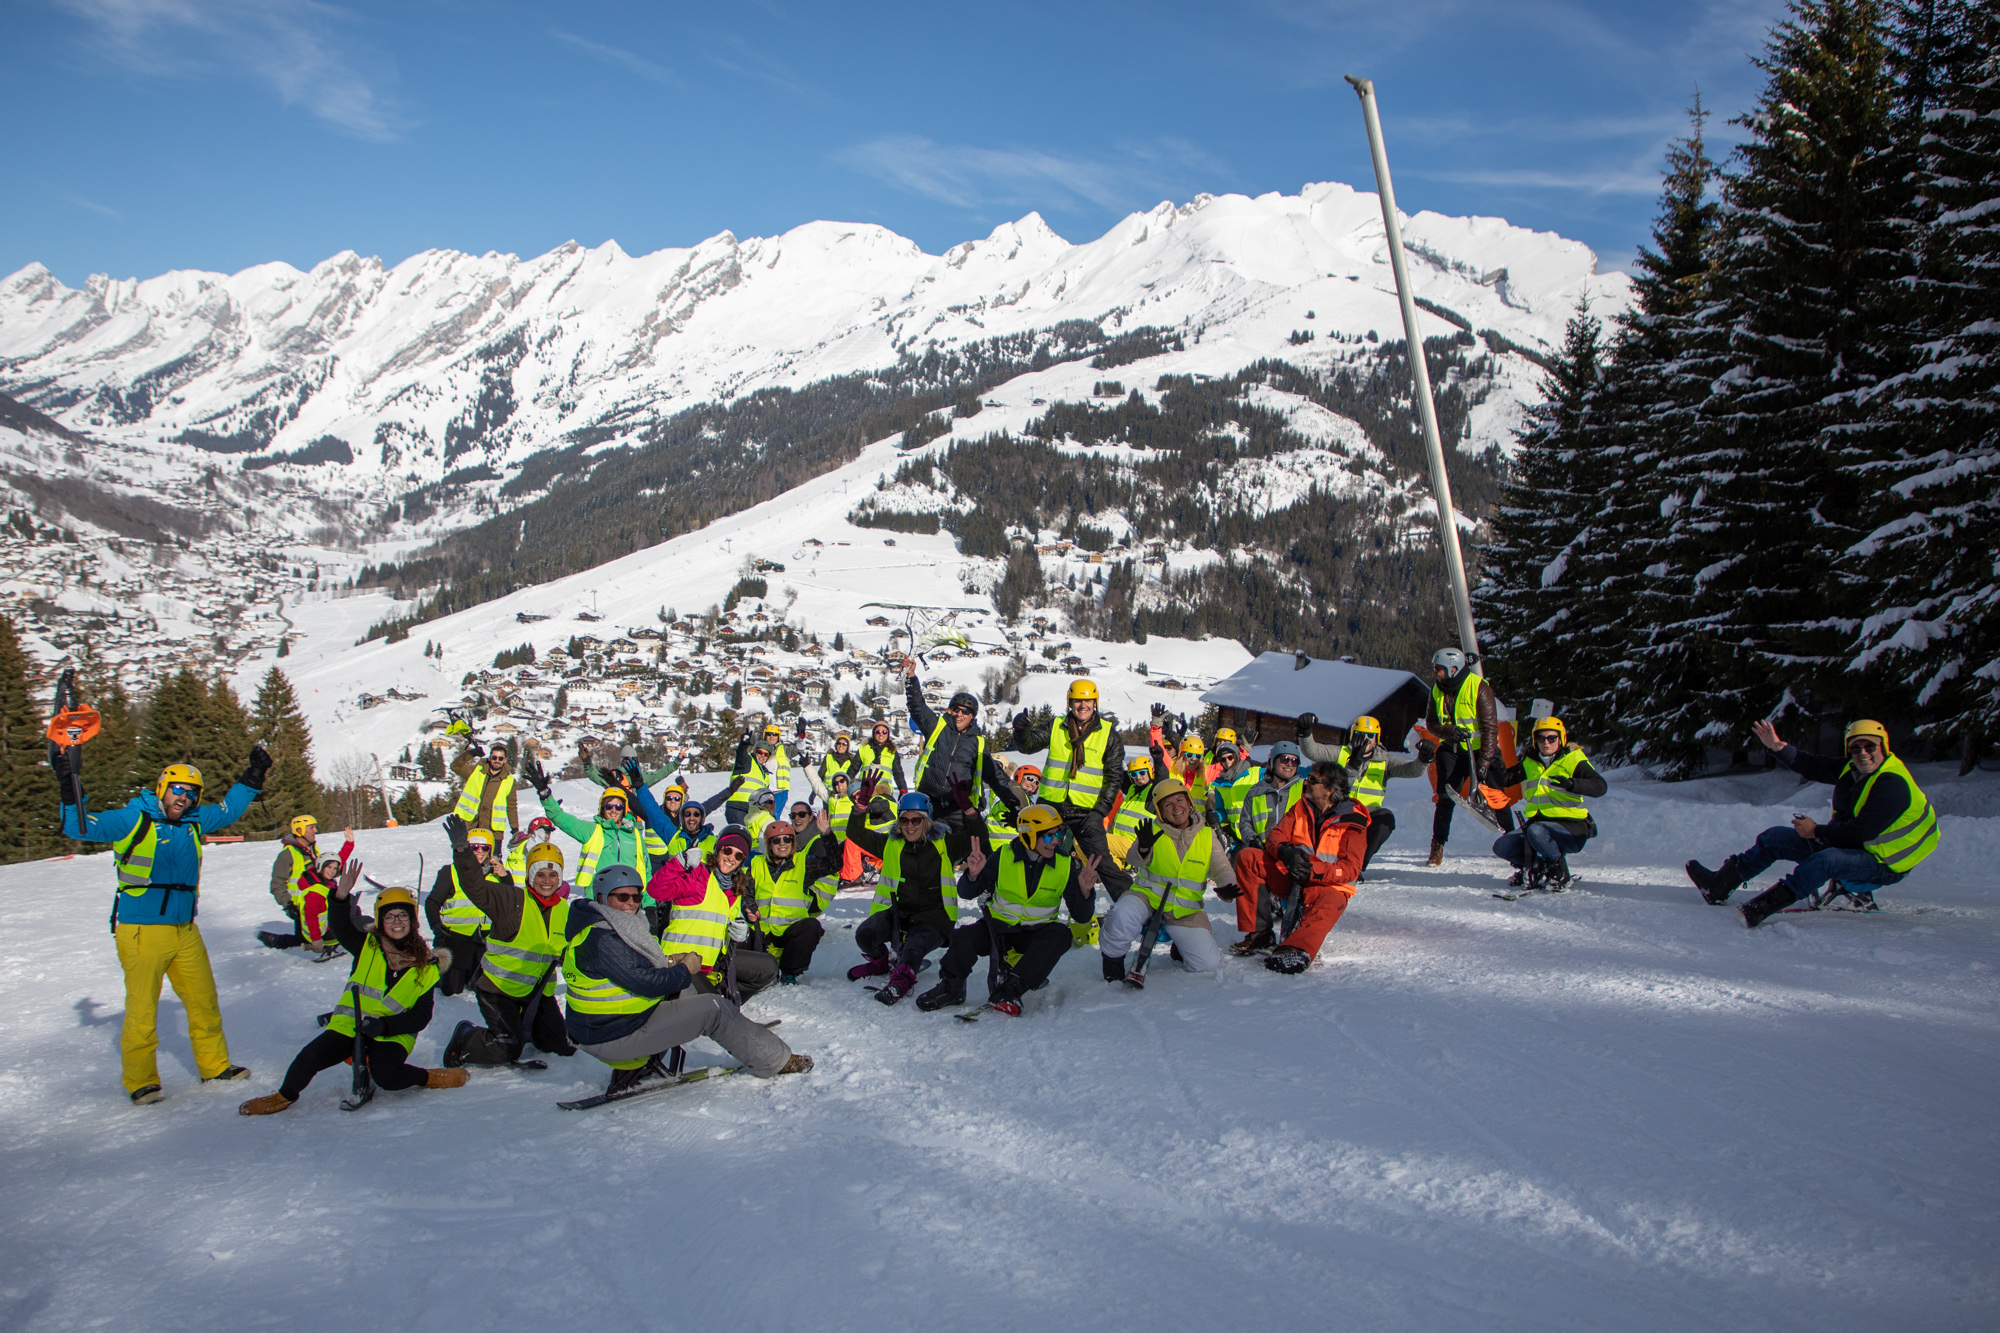 Break_The_Ice_LaClusaz_2019_web-7252.jpg